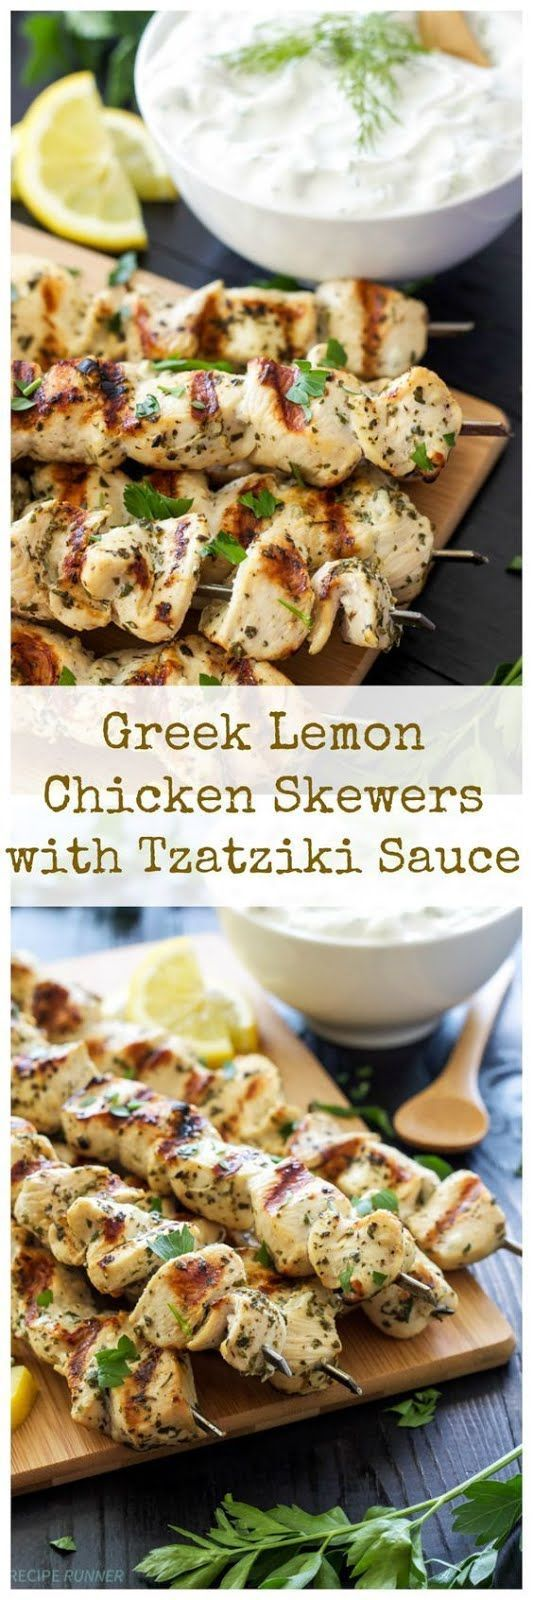 Feed a crowd the healthy way with these amazingly delicious & filling recipes to try out at your next BBQ! 1. So yummy, these Grilled Salmon Skewers are tasty, light & healthy! 2. Herbed Lemon Garlic Chicken Skewers 3. Mediterranean Portobello Beef Burger